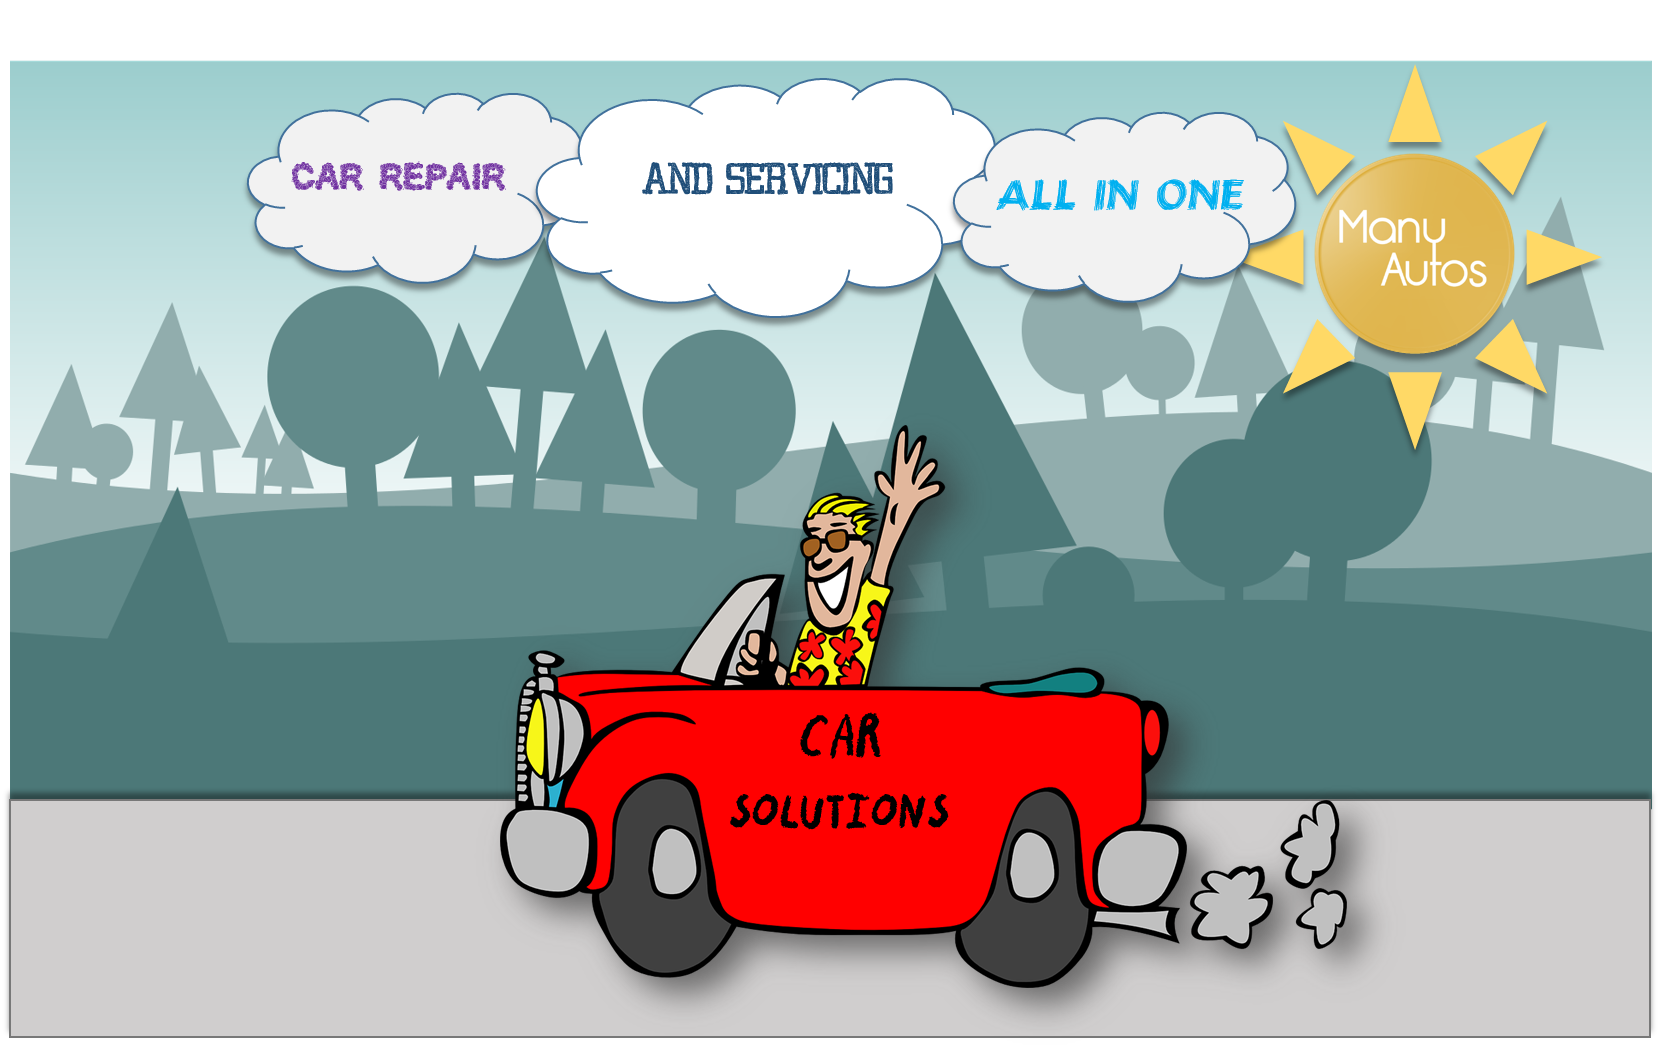 All in one car solutions. Car repair and servicing for all